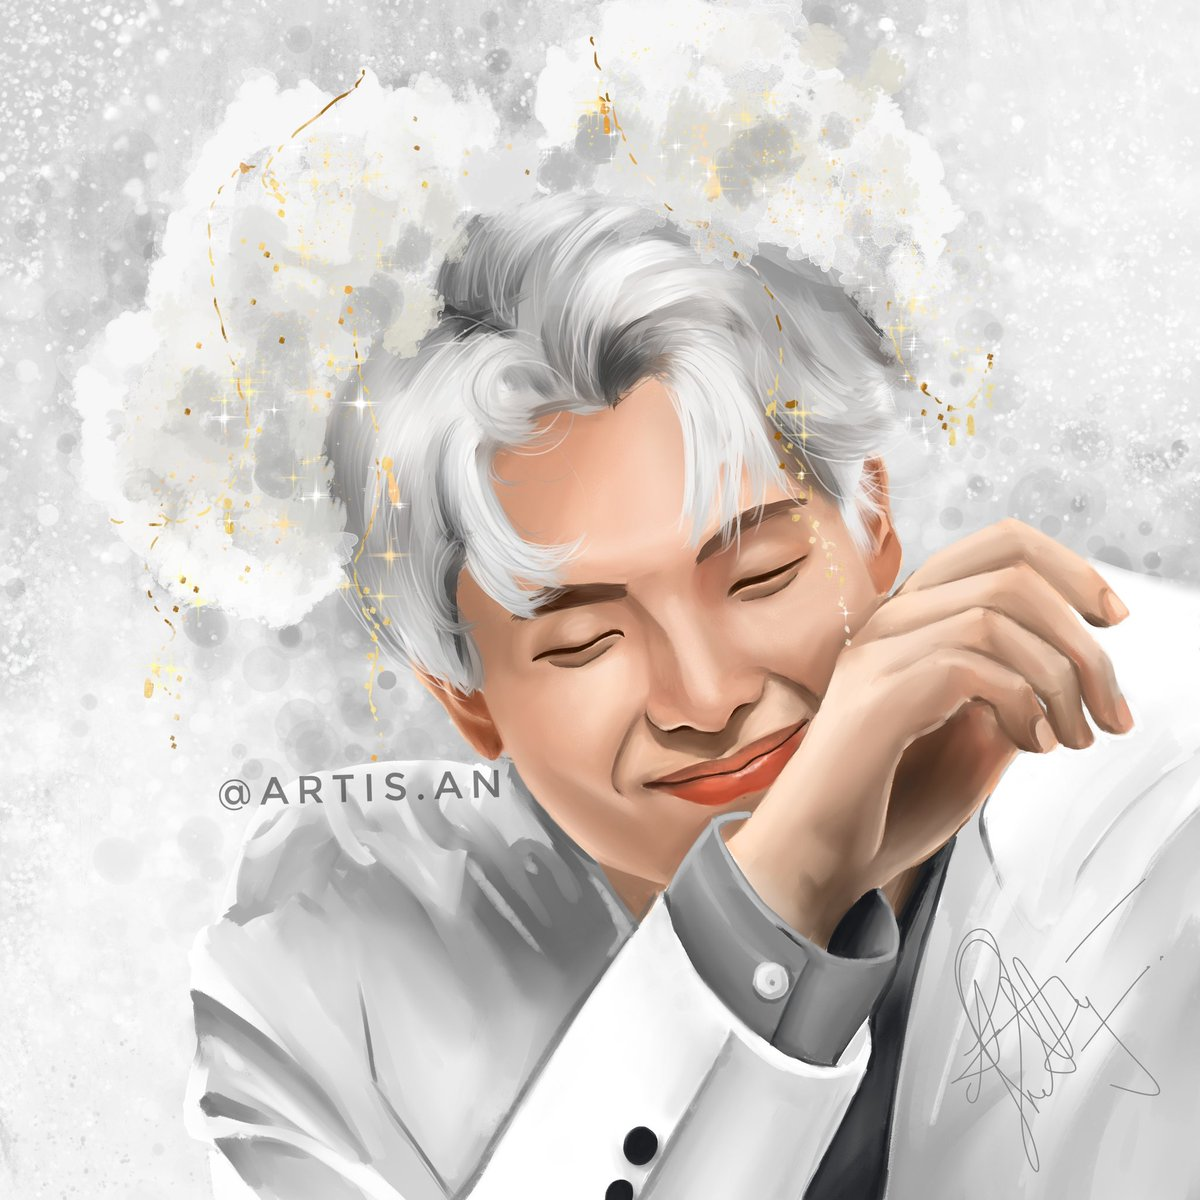 Here's a Joonie I drew a while back as part of my colour studies over on Instagram *Ice Prince Joonie*  #bts #KimNamjoon #rm #namjoon #btsfanart #NamGiHOT100Songwriters #BTSARMY #artmy #desiartmy